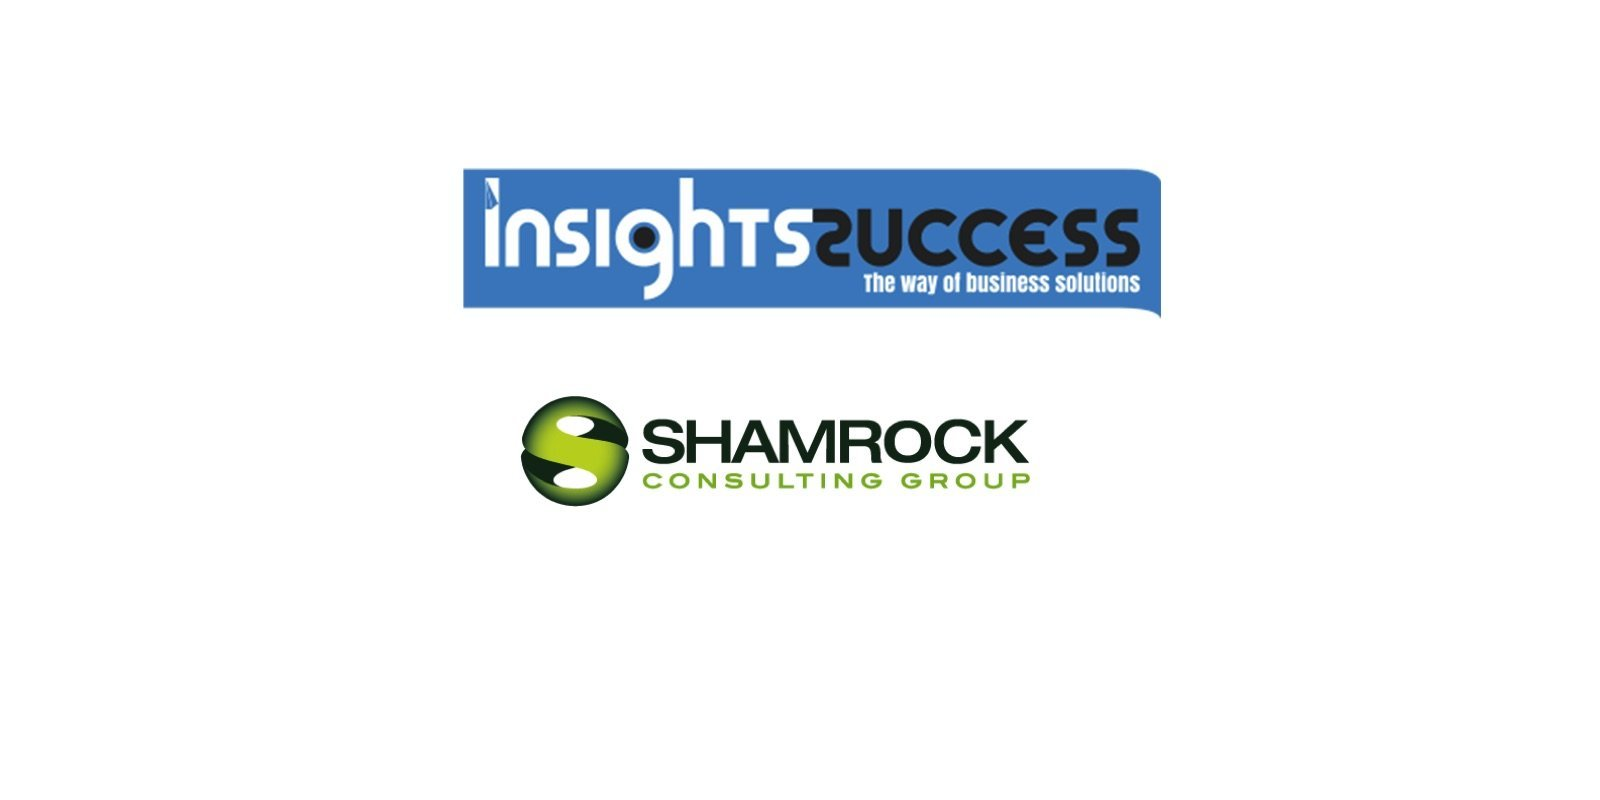 Insight Success: Shamrock Consulting Group: The 10 Most Innovative Telecom Solution Providers 2018